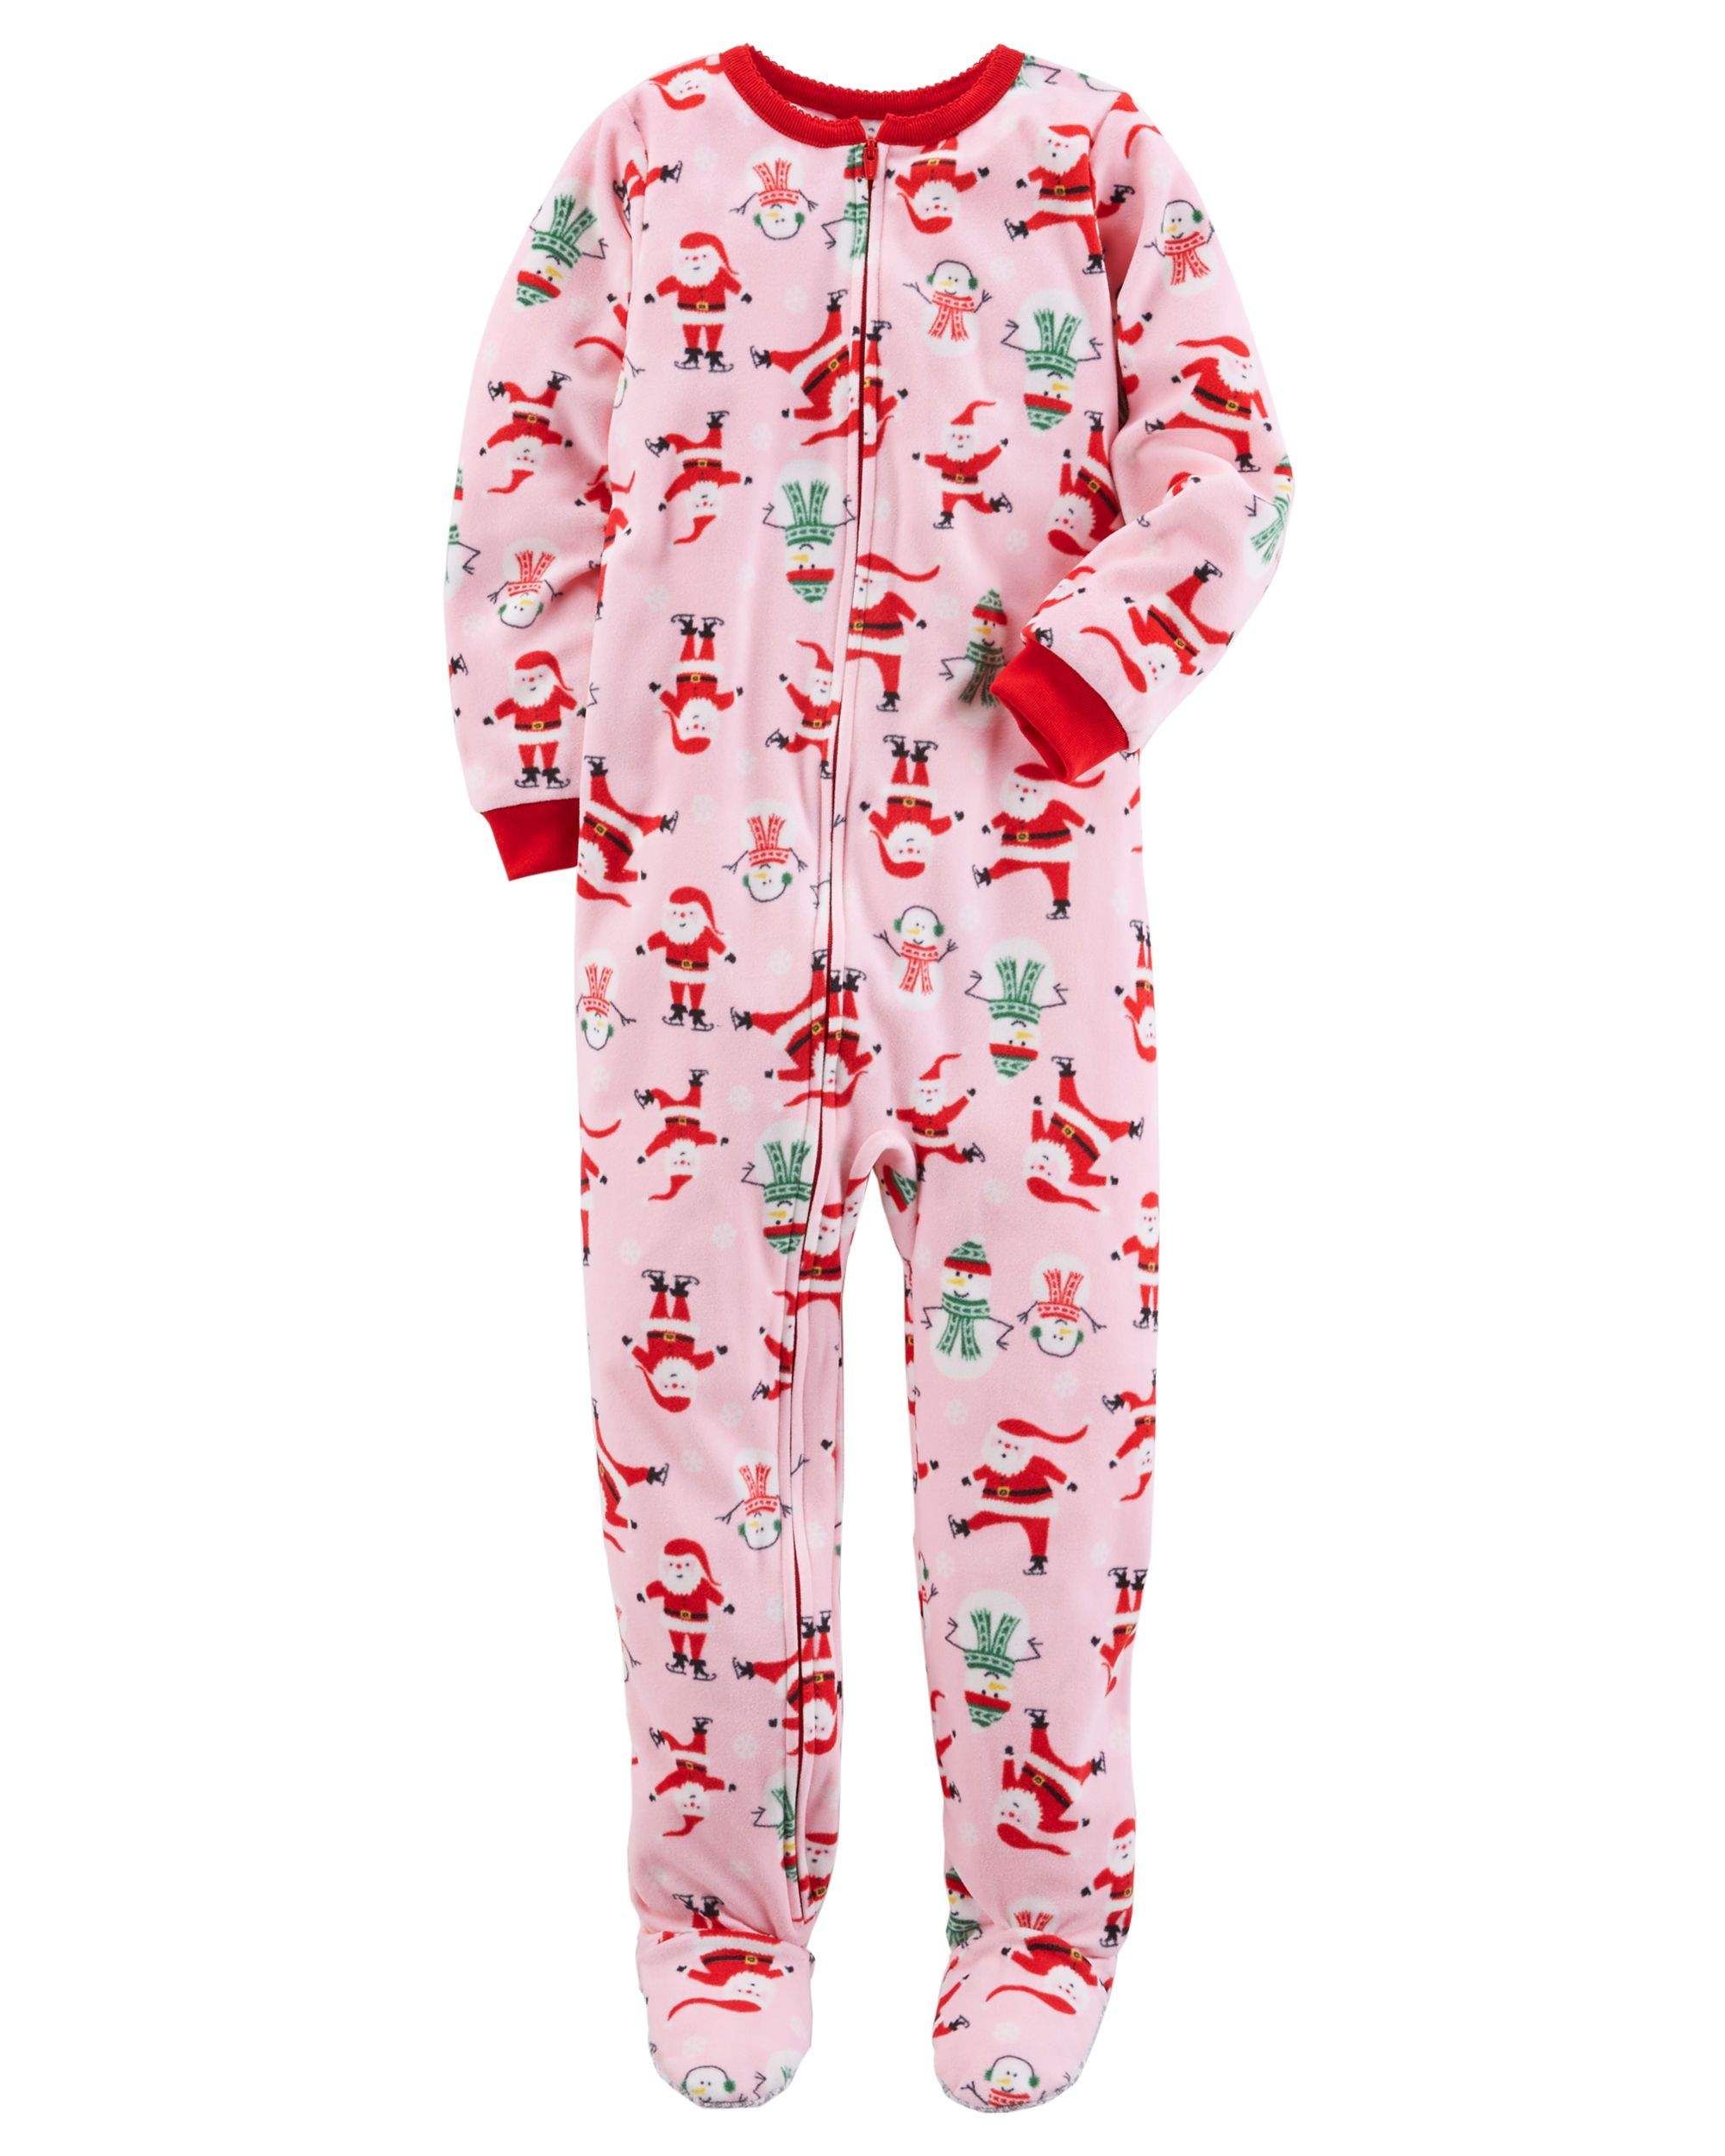 76d36f9728 Baby Girl 1-Piece Christmas Fleece PJs